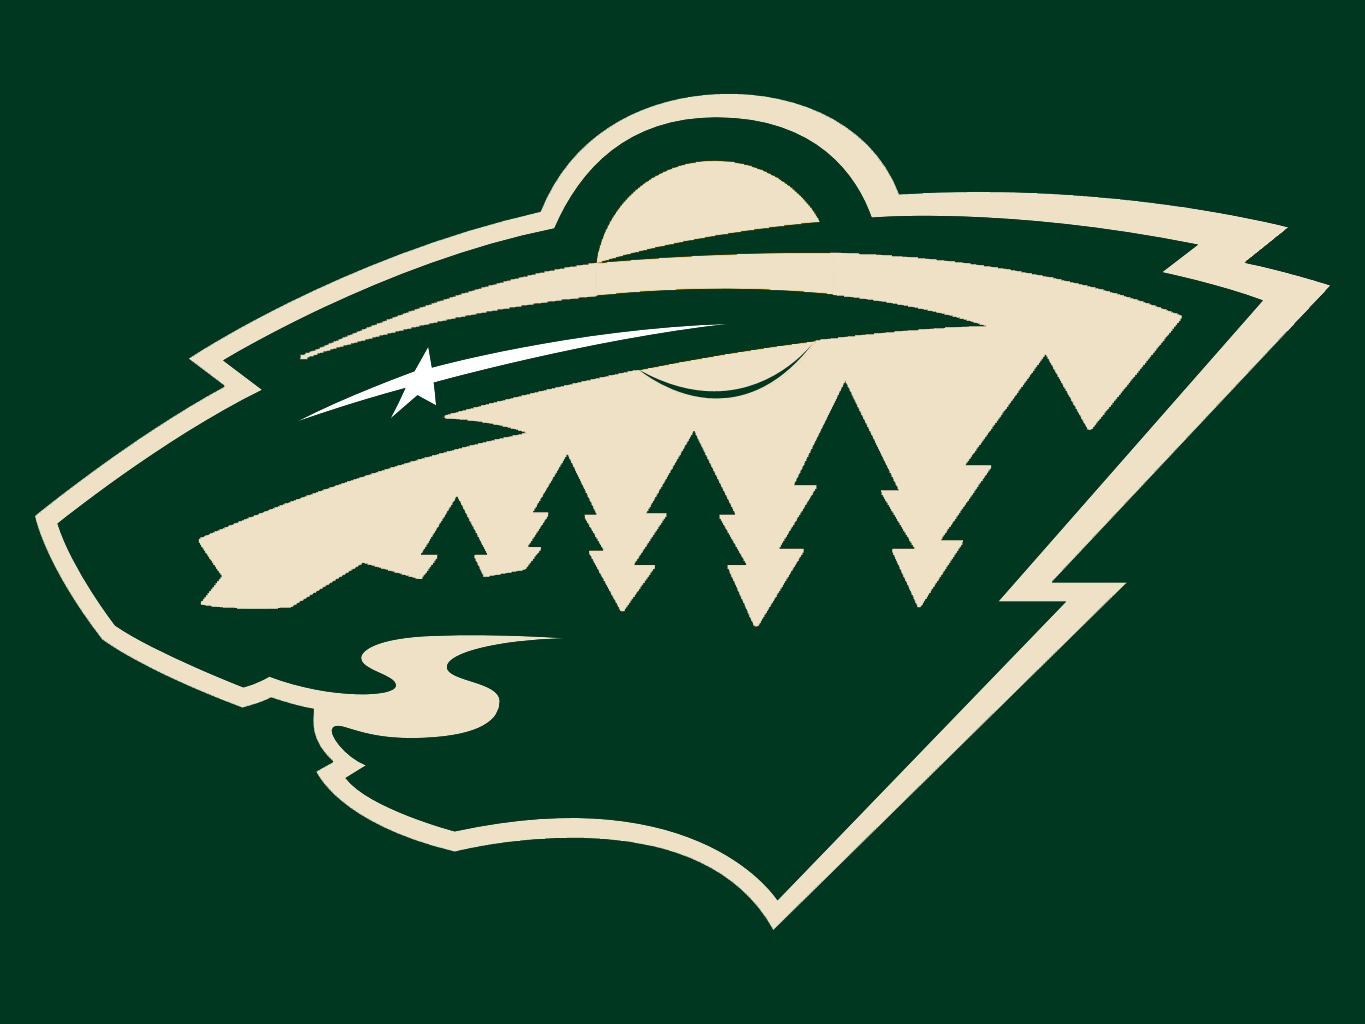 WILD PODCAST: Post-Yeo Expectations